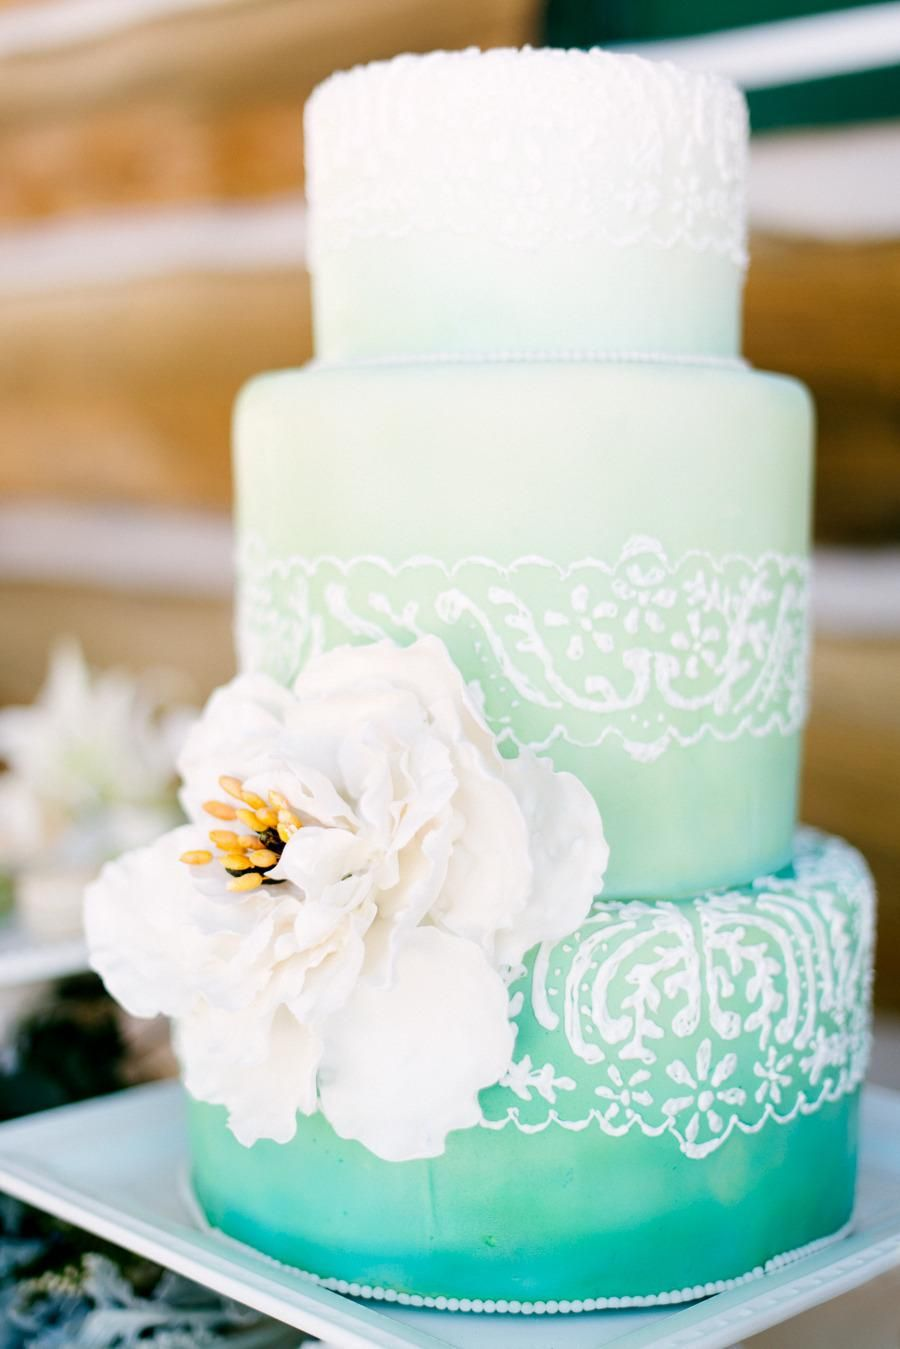 25 Unique Wedding Cakes Ideas | Creative wedding cakes, Wedding cake ...